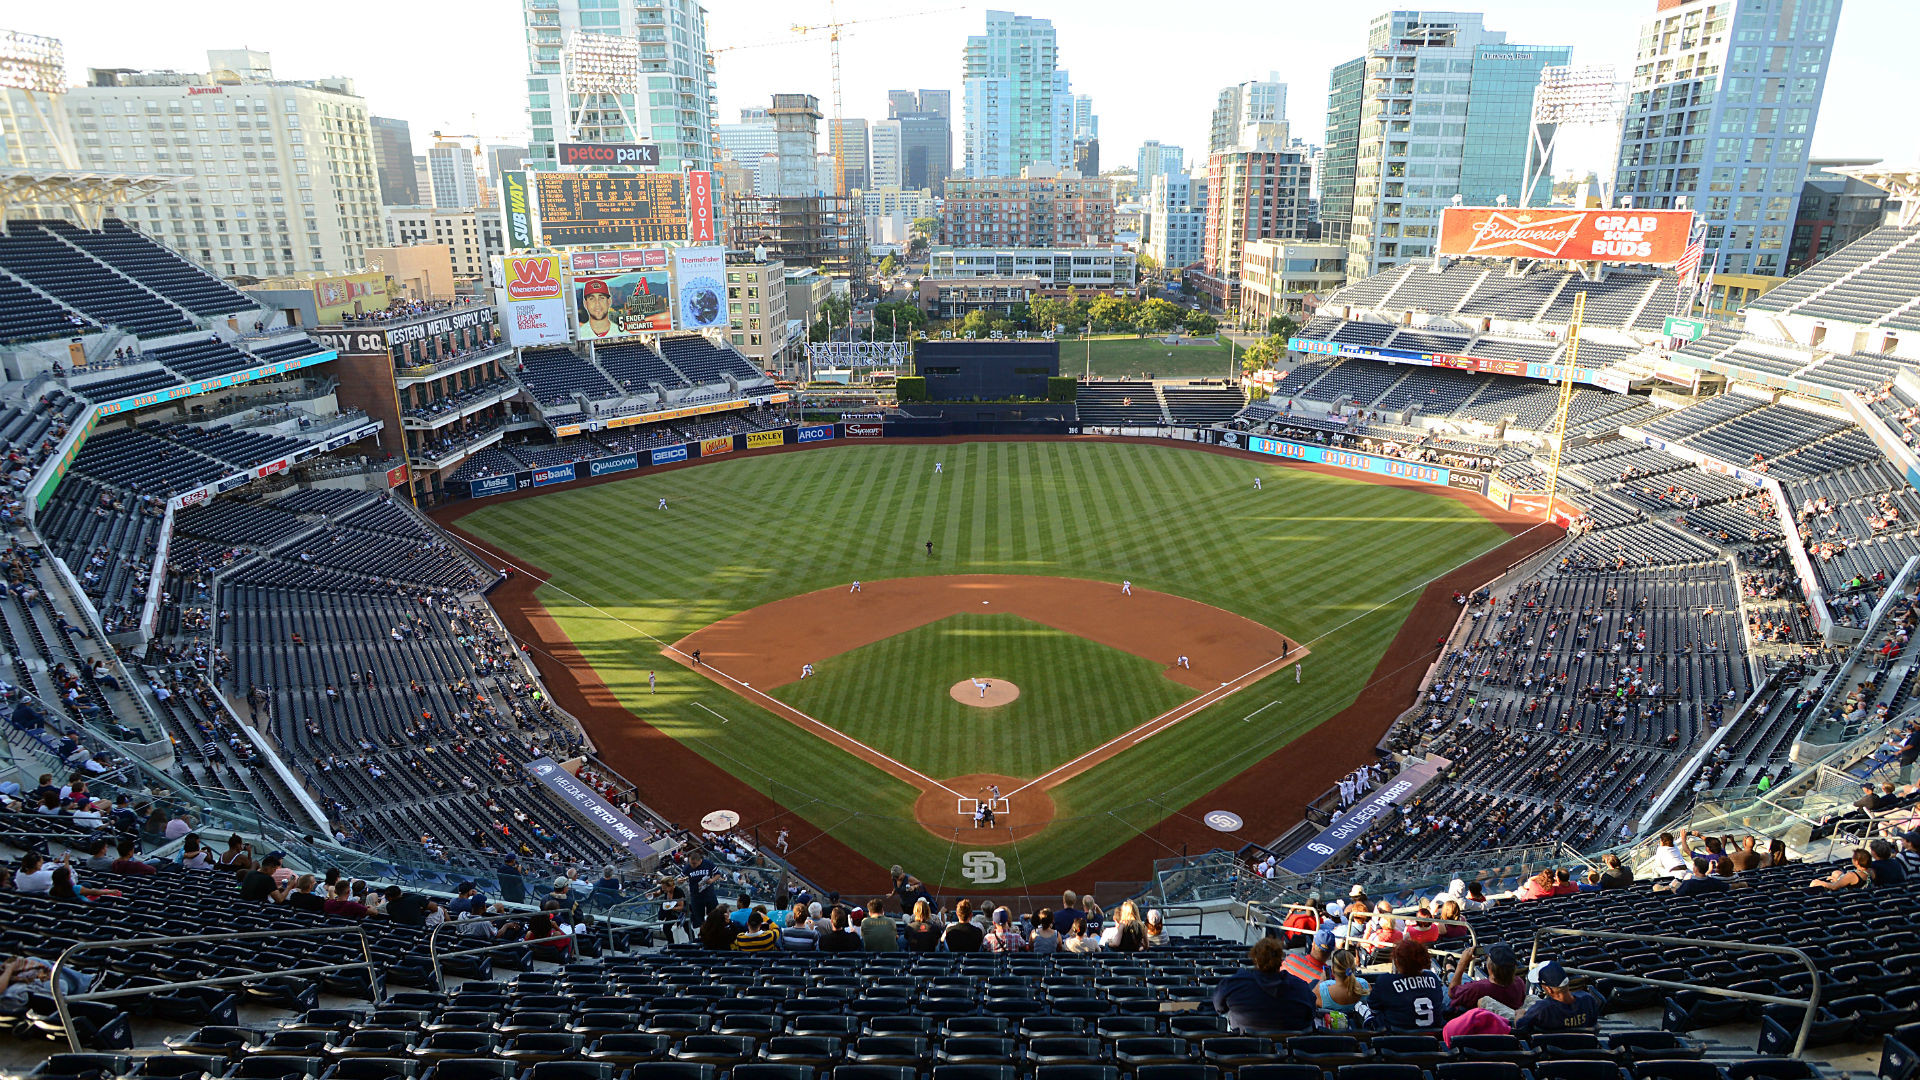 San Diego Gay Men's Chorus bashes Padres after national anthem mistake |  MLB | Sporting News